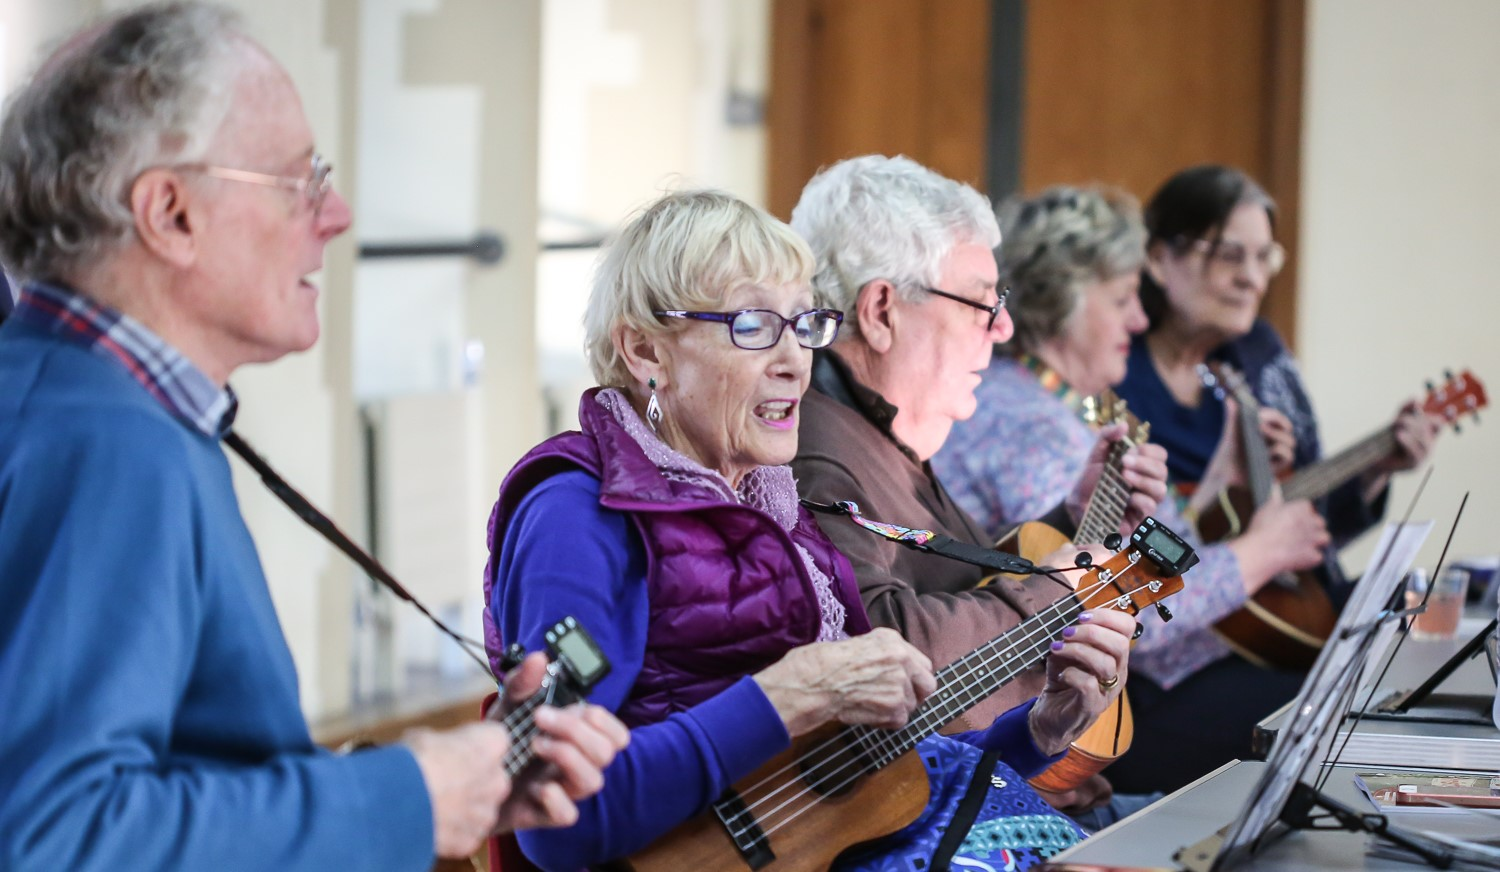 Ukulele classes at The Avenue Club, Kew